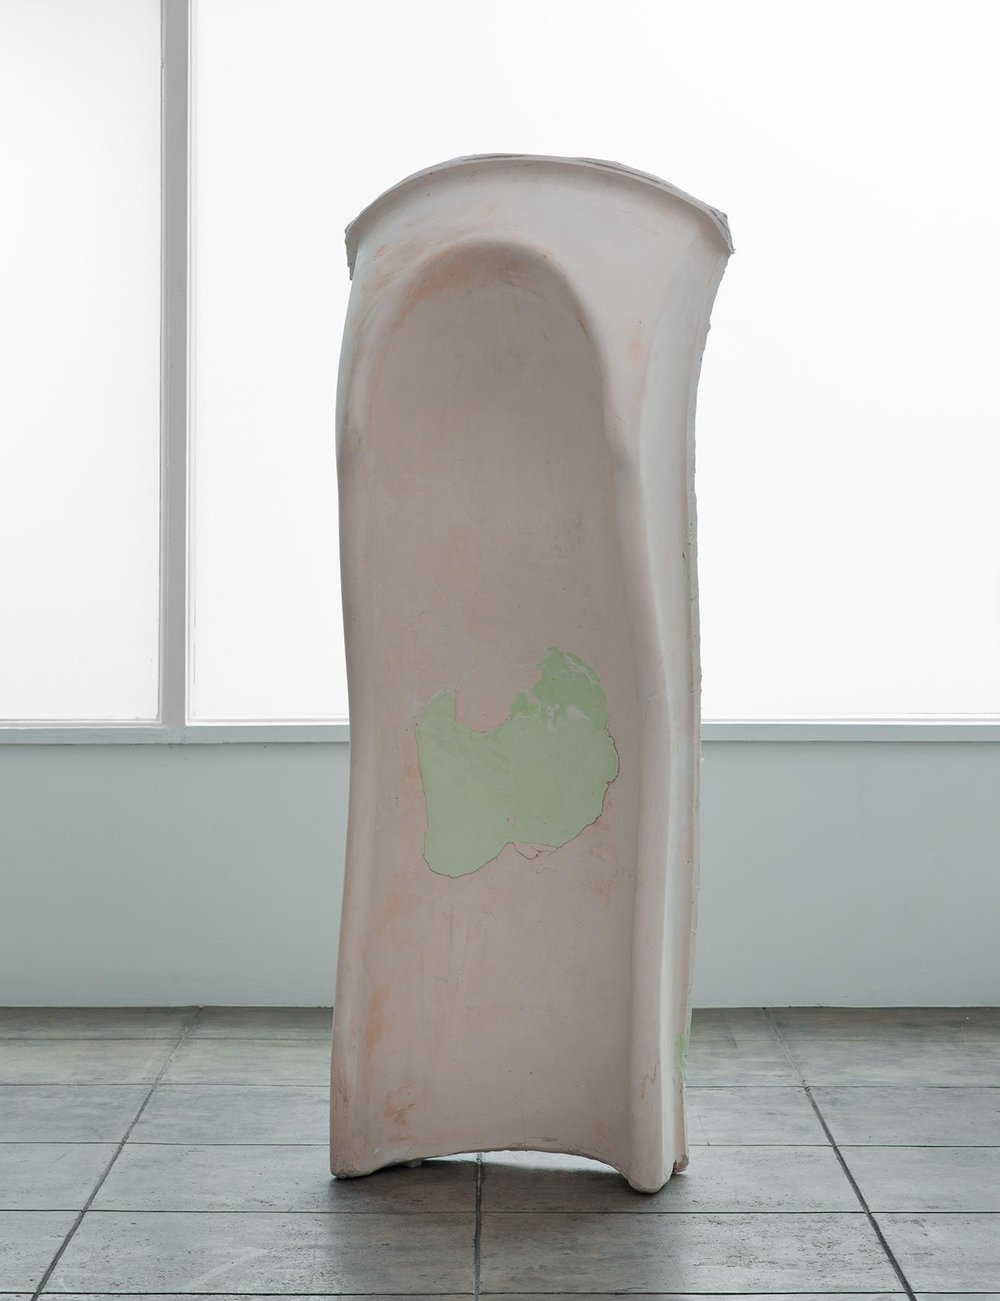 Nevine Mahmoud  slide (my tongue) , 2013 plaster, burlap, and pigment 70 x 12 x 23.5 in Image courtesy of Overduin & Co.